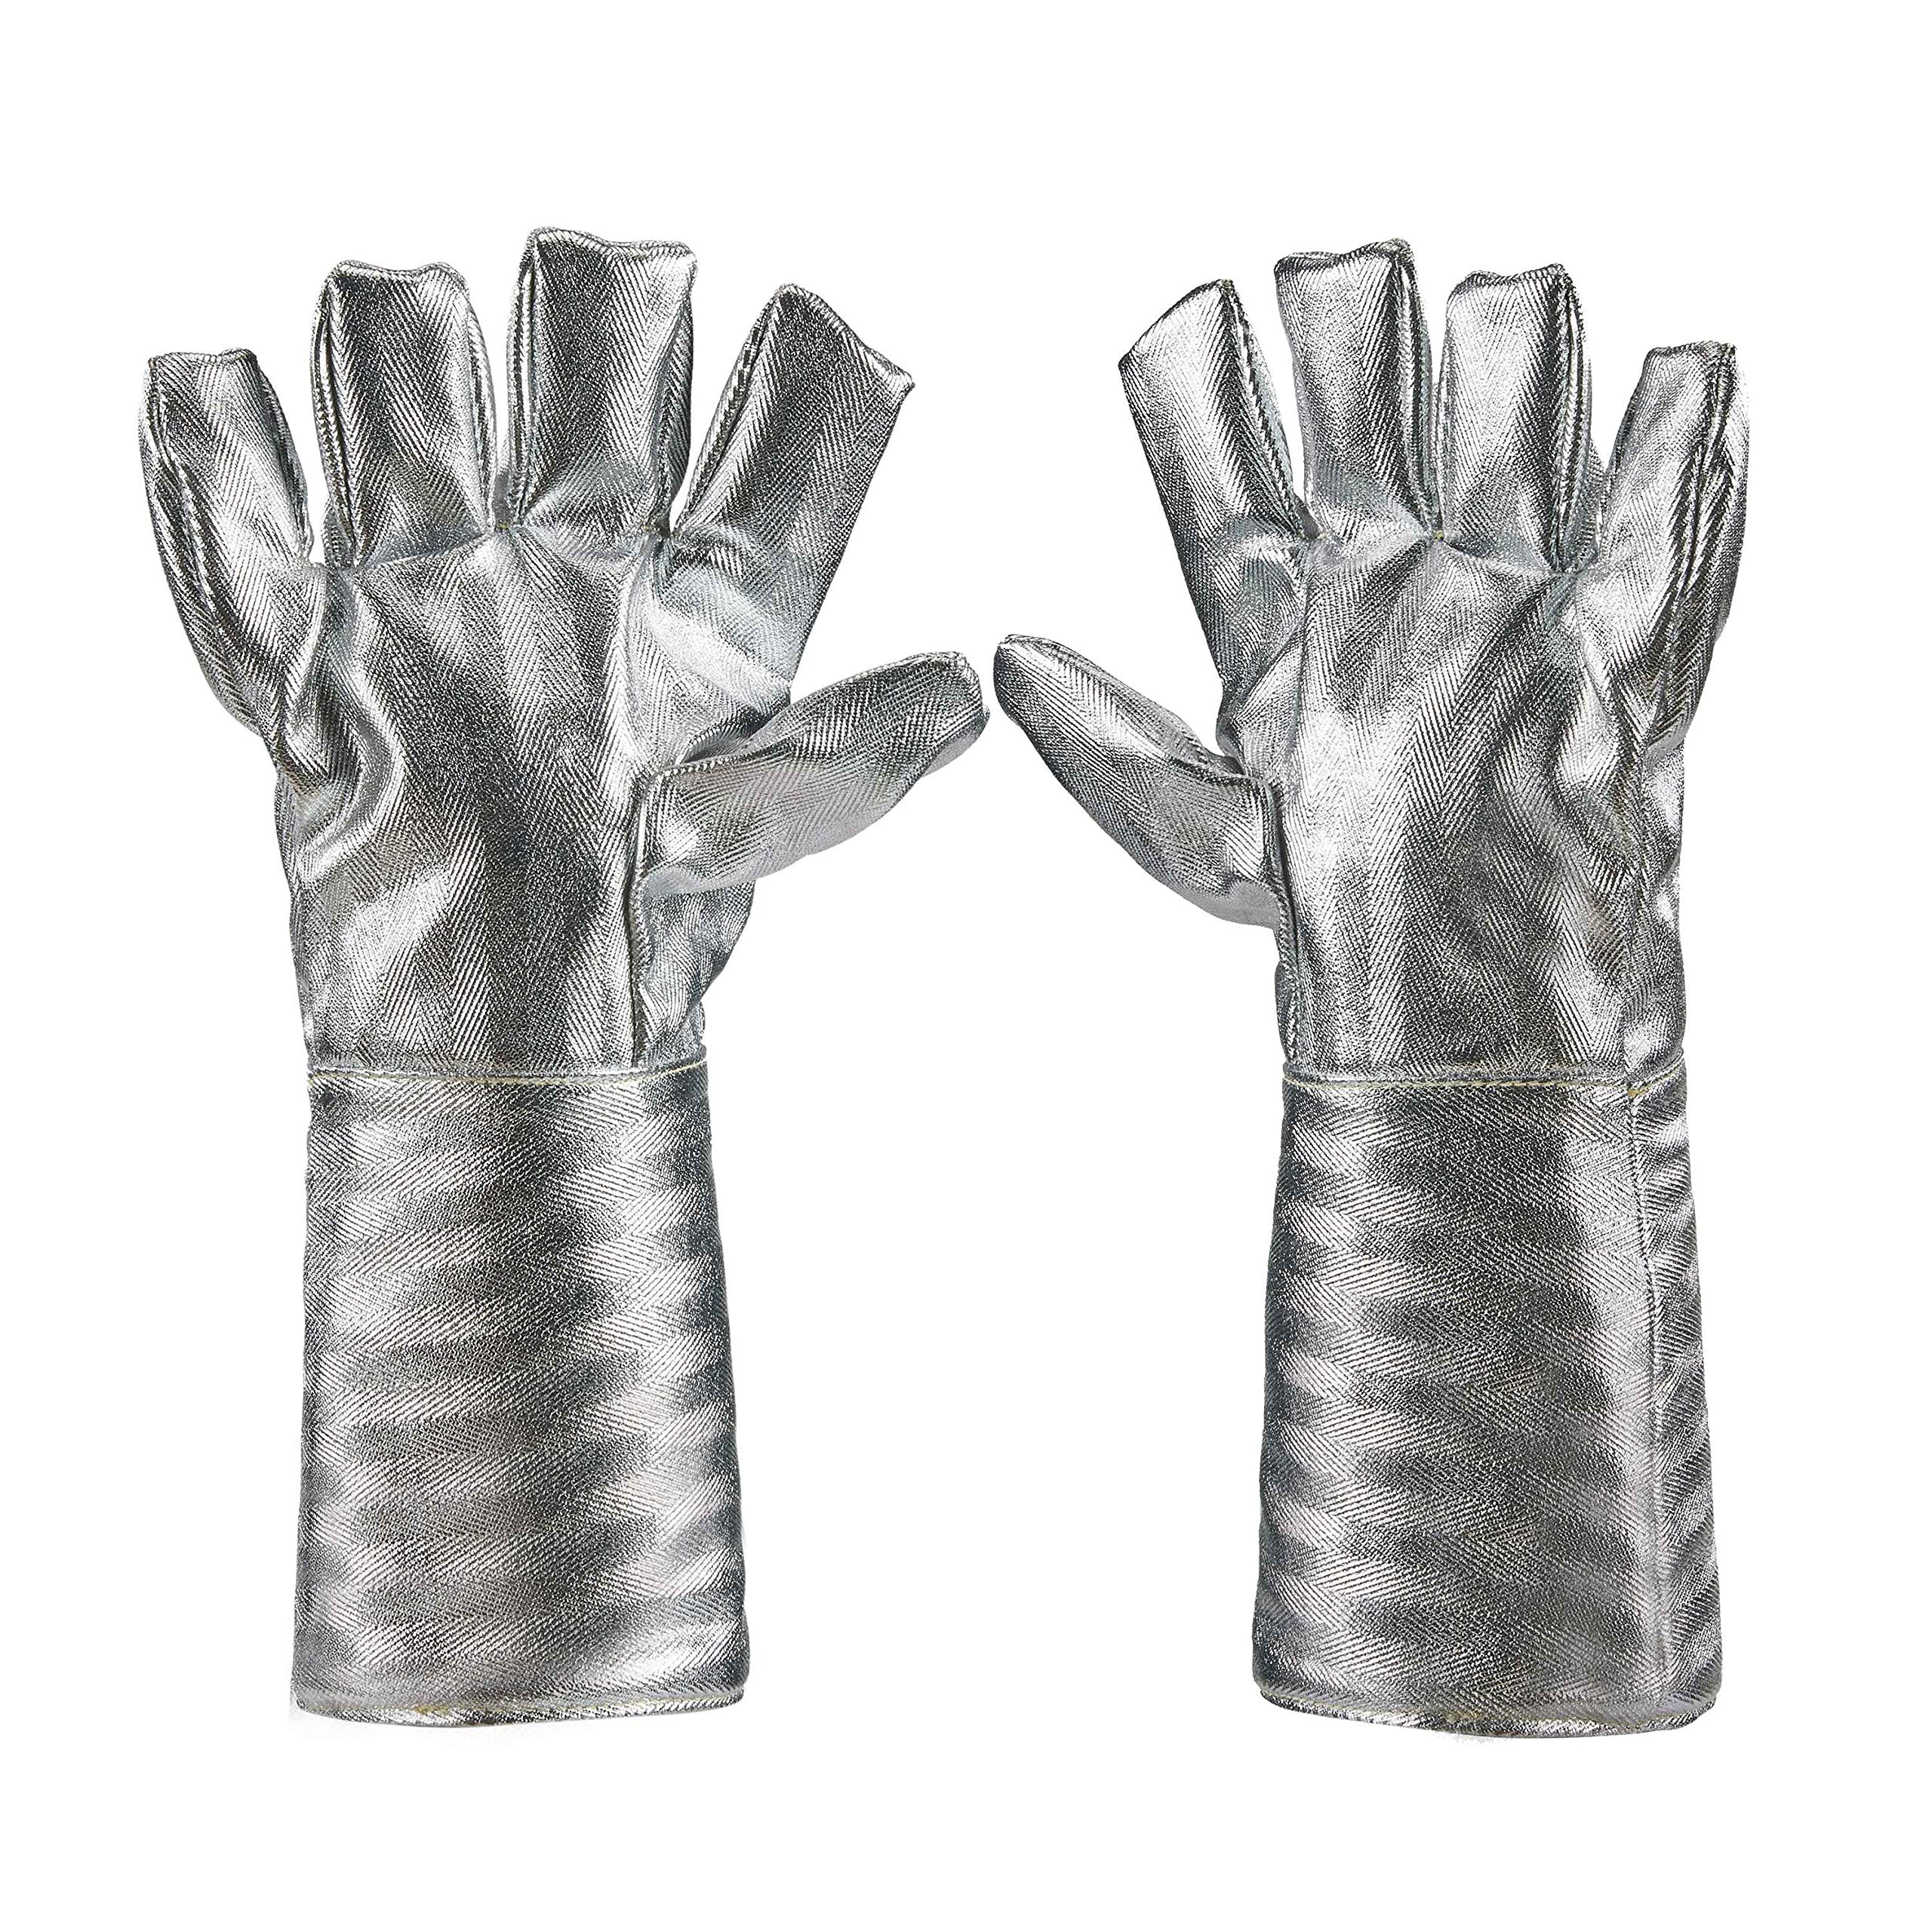 Holulo High Temperature Kevlar Aluminized Glove Heat Resistant Glove Welding Gloves Safety Work Glove (L-38cm) by Holulo